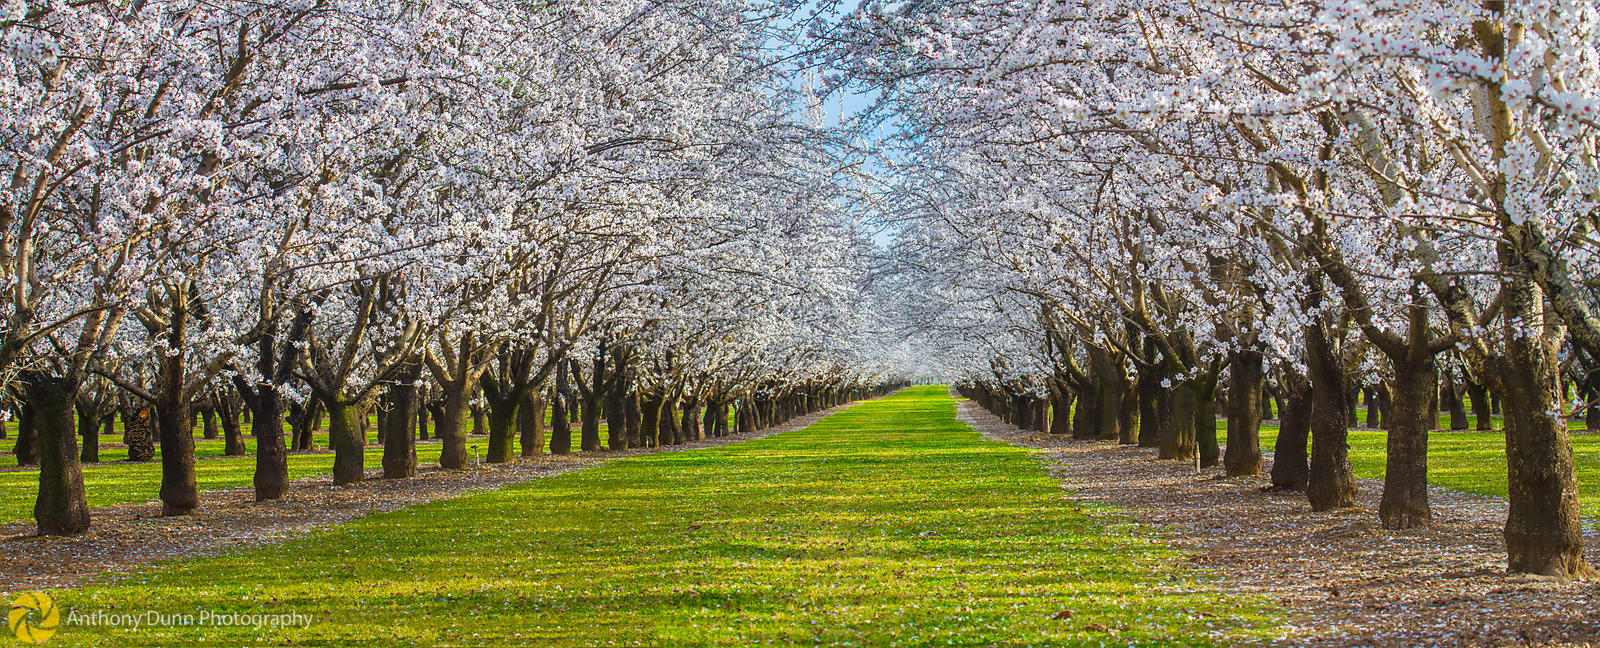 Panorama of Almond Orchards #1